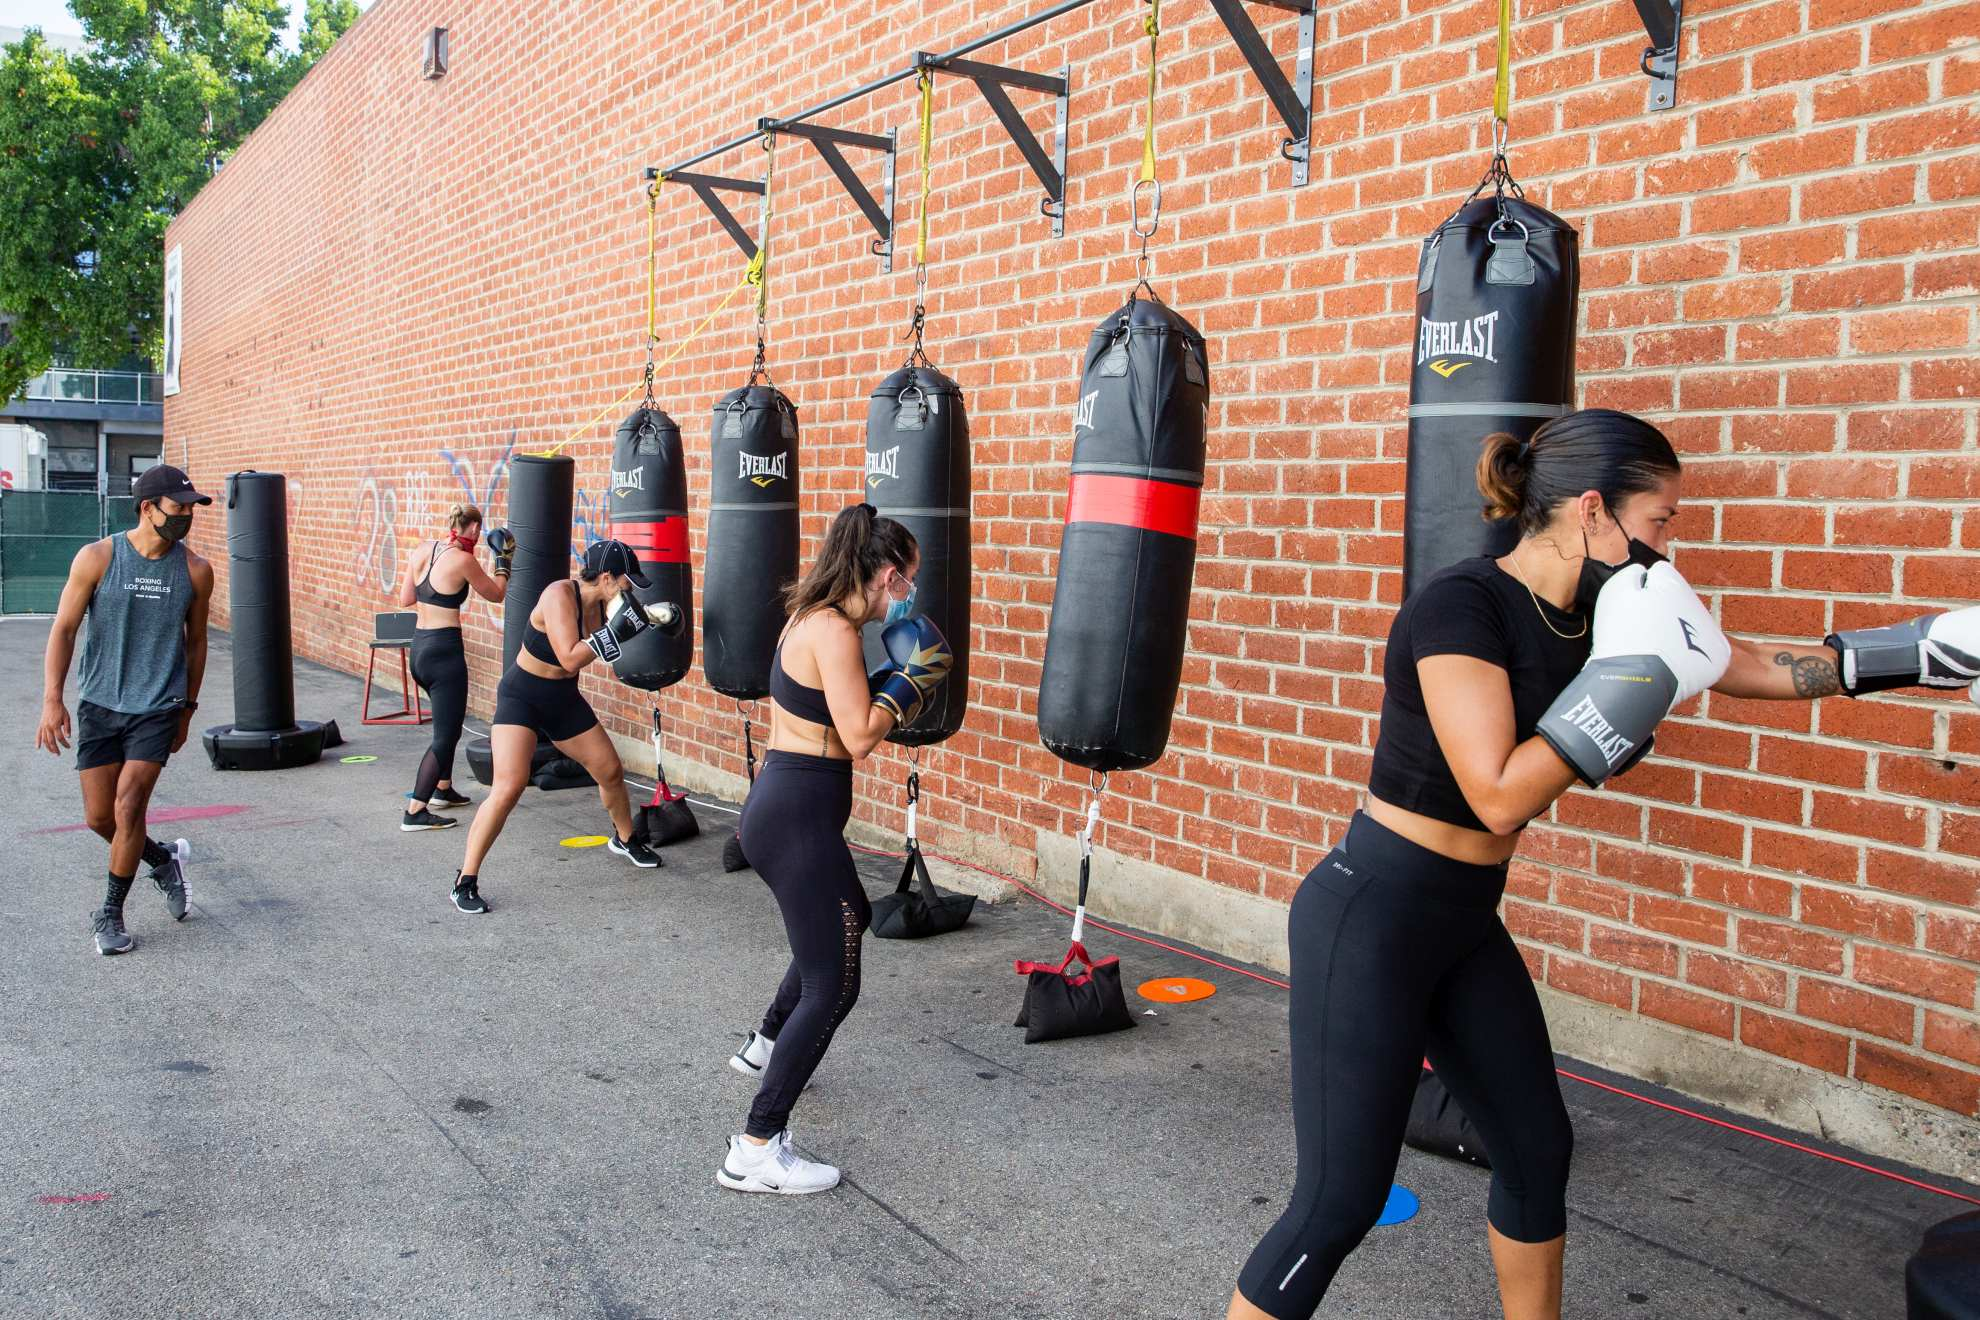 Outdoor fitness class in Santa Monica gym during Covid